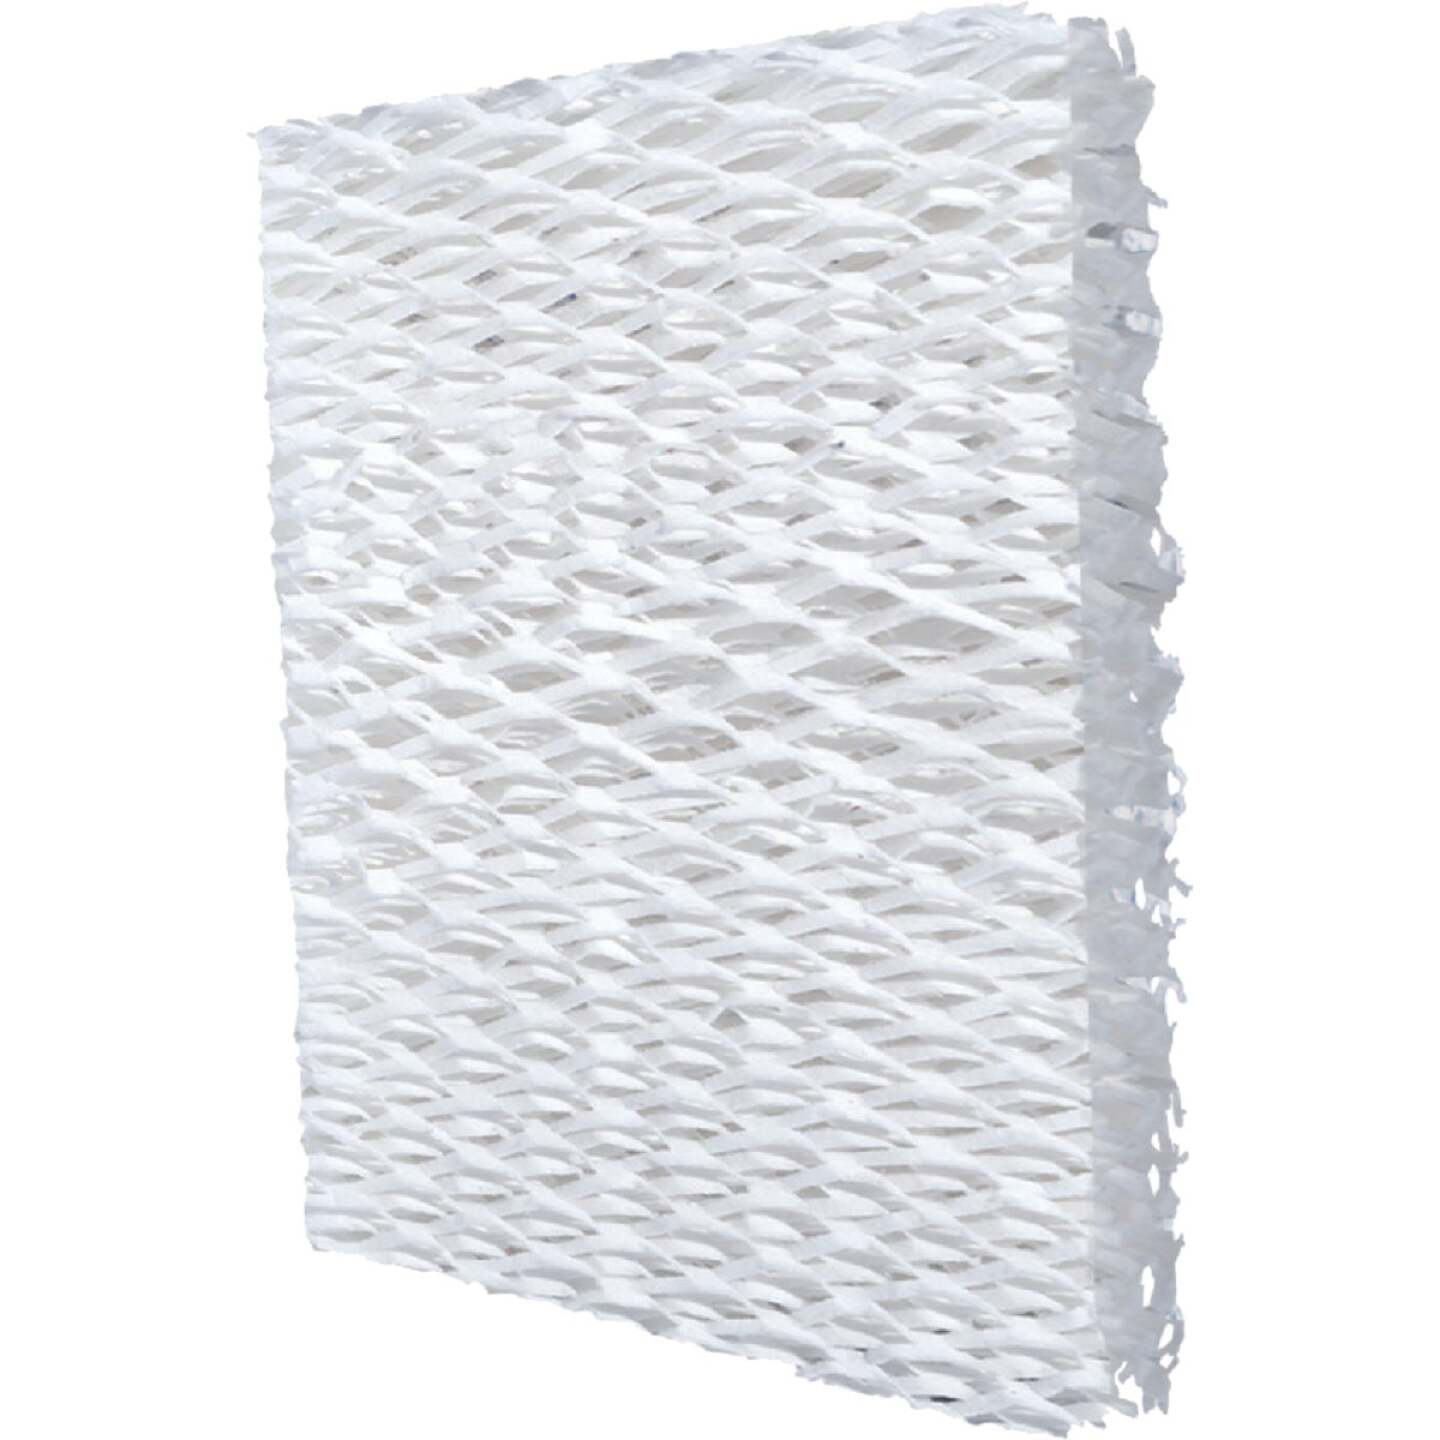 Honeywell HAC700 Humidifier Wick Filter (2-Pack) Image 1